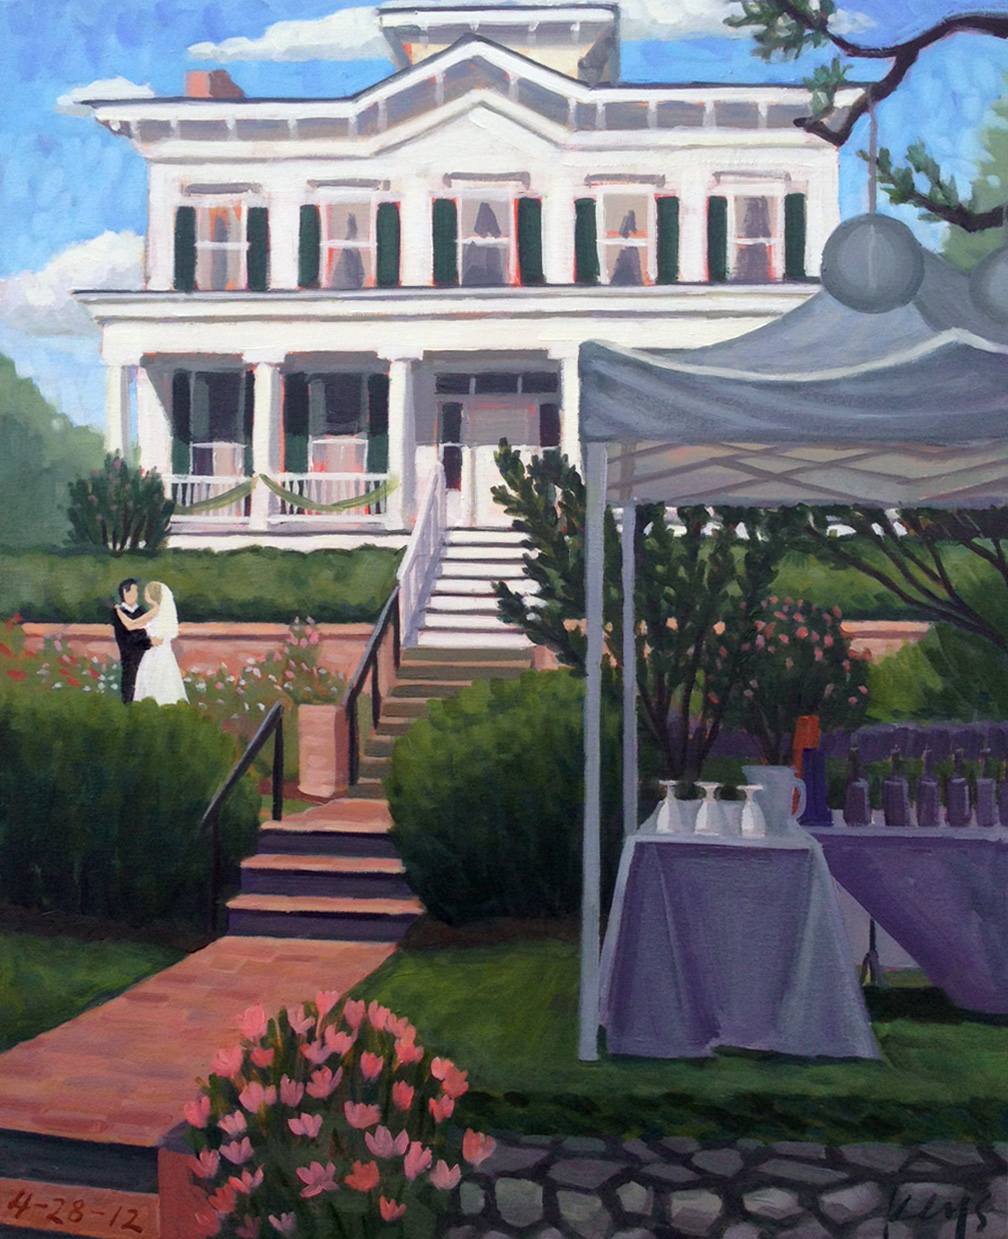 City-club-wilmington-wedding-painting-by-ben-keys-wedding-artist-of-wed-on-canvas